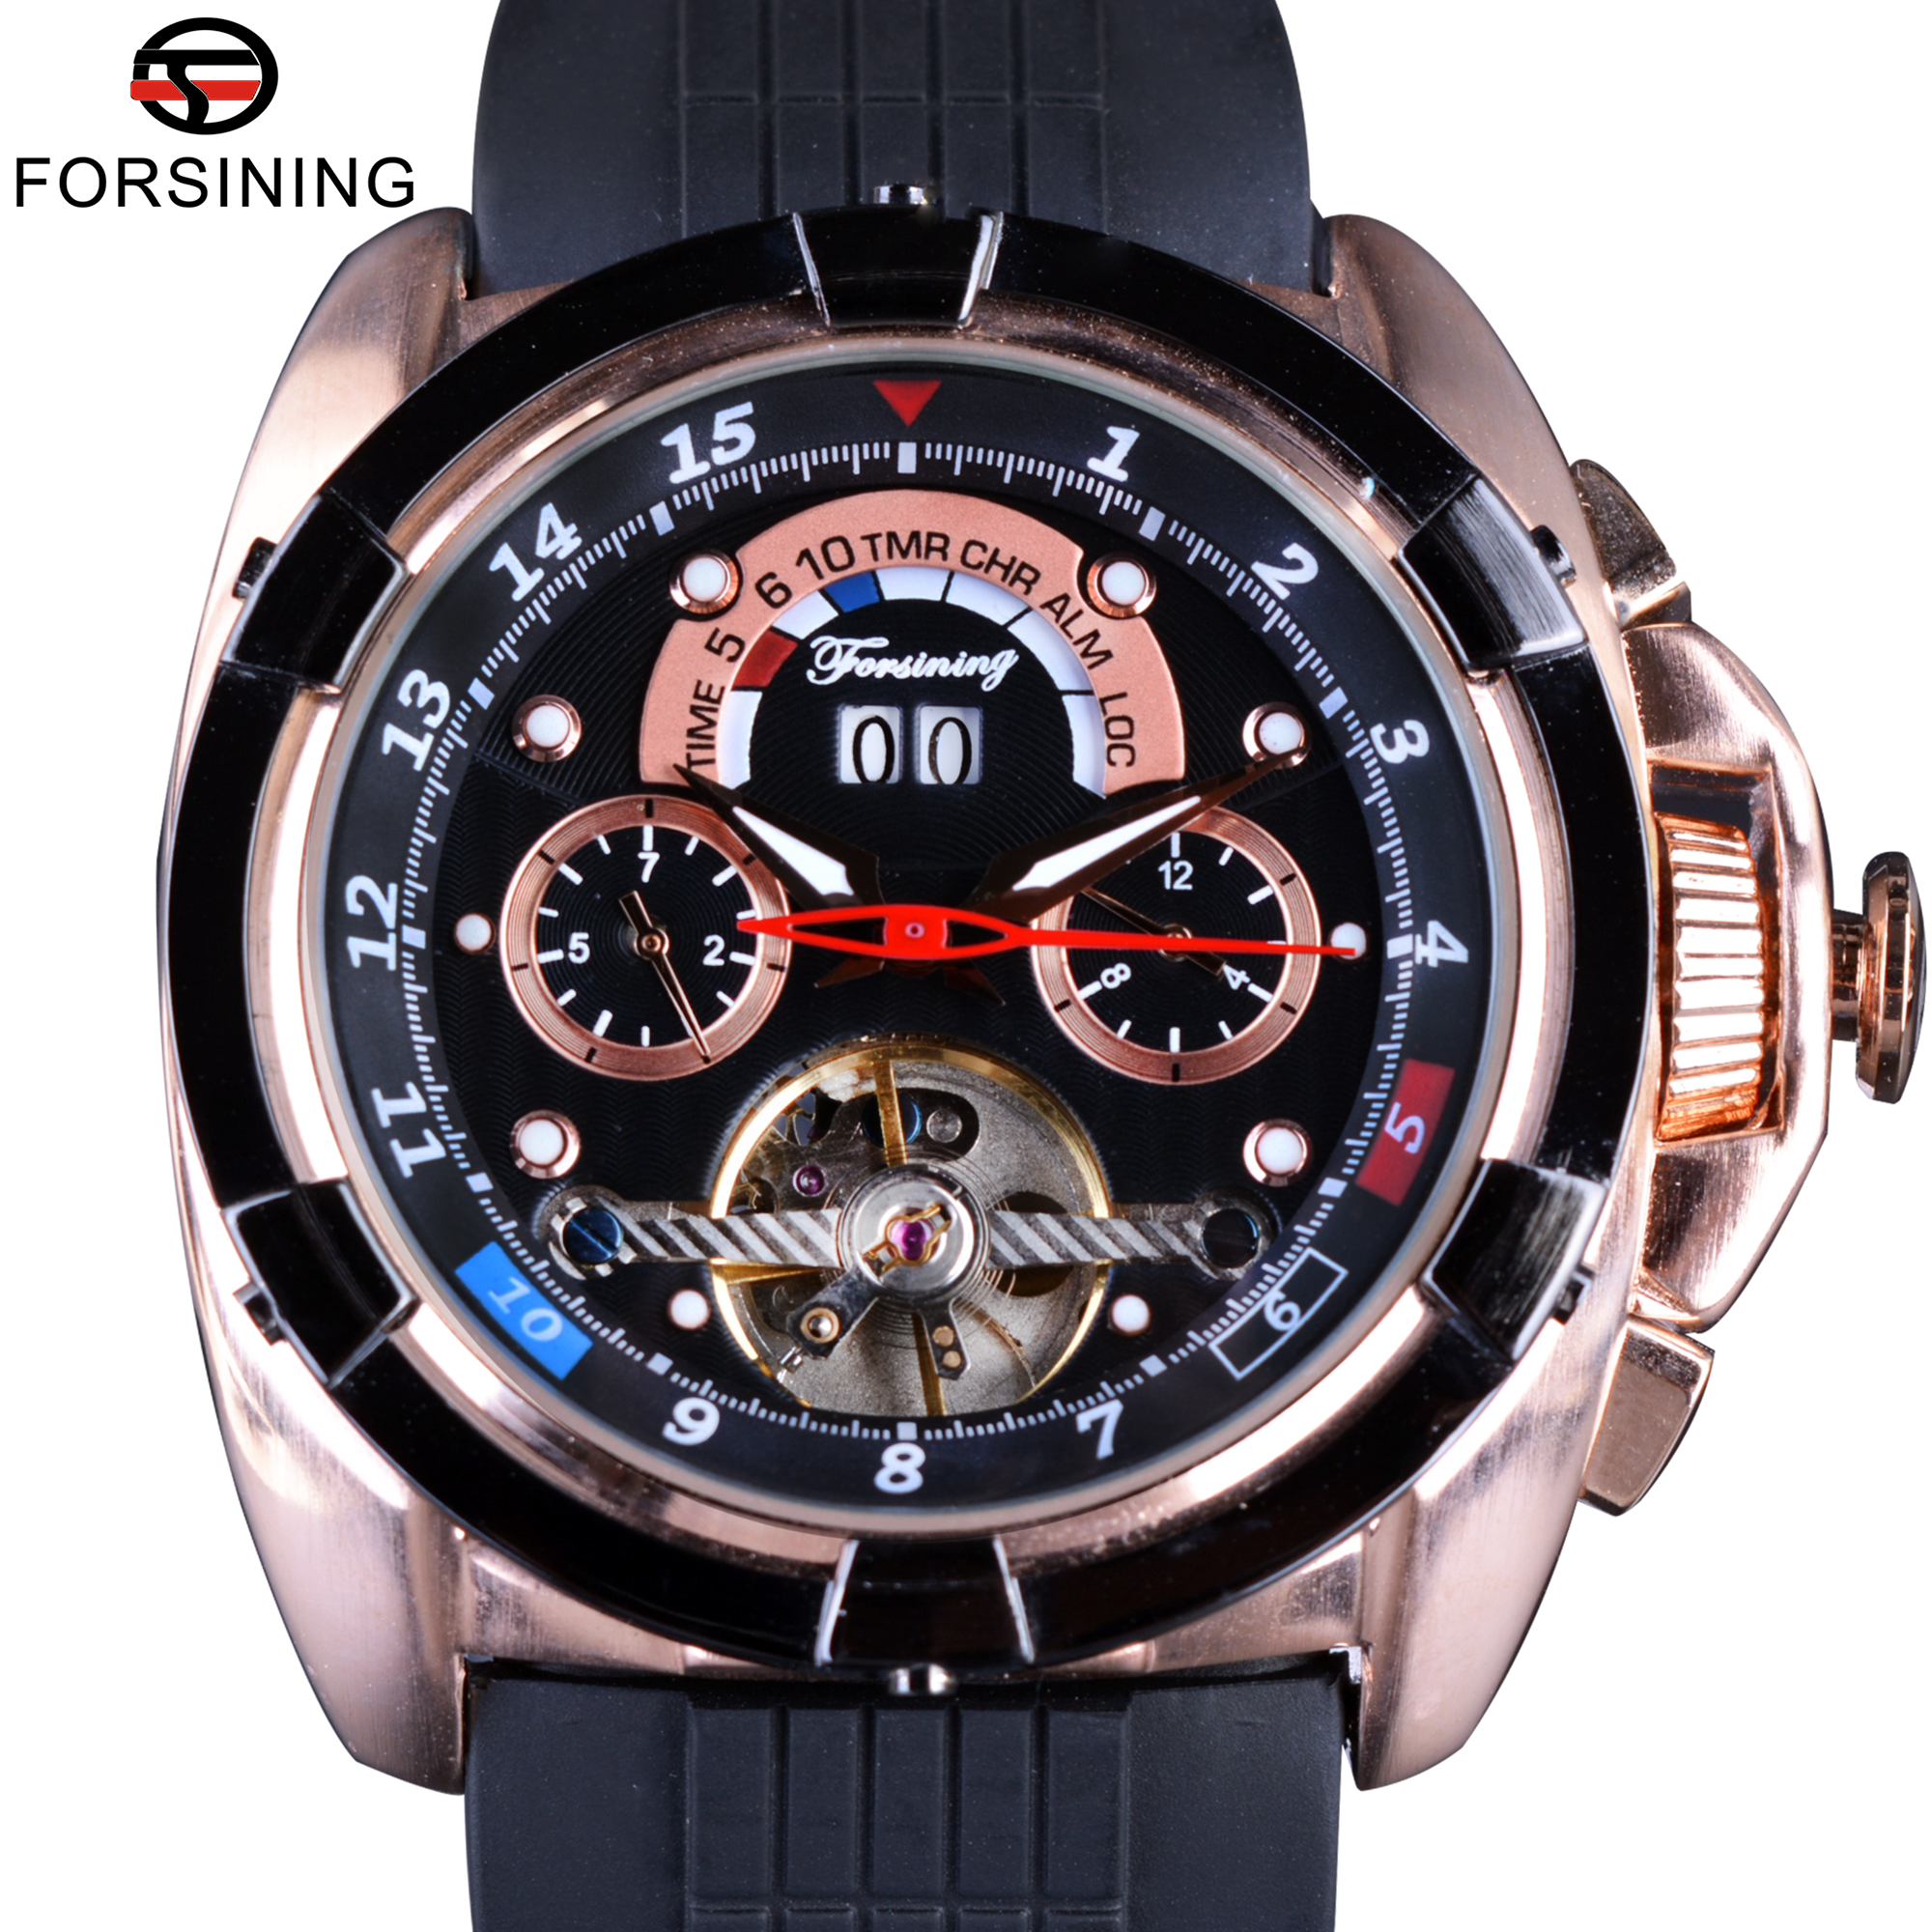 Forsining Multifunction Tourbillon Calendar Display Fashion Men Sport Watches Rose Golden Watch Men Luxury Brand Automatic Watch forsining multifunction tourbillon date day display rose golden watch men luxury brand automatic watch fashion men sport watches